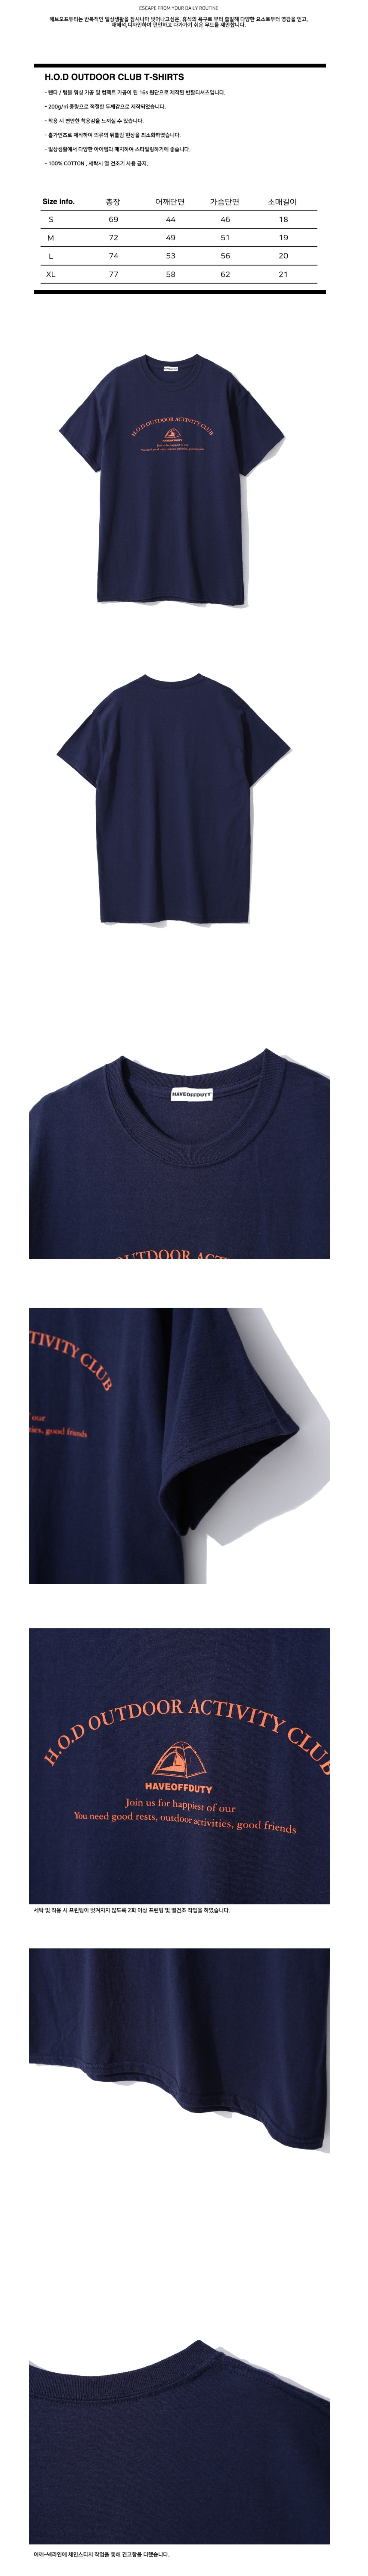 OUTDOOR CLUB T-SHITS (NAVY)